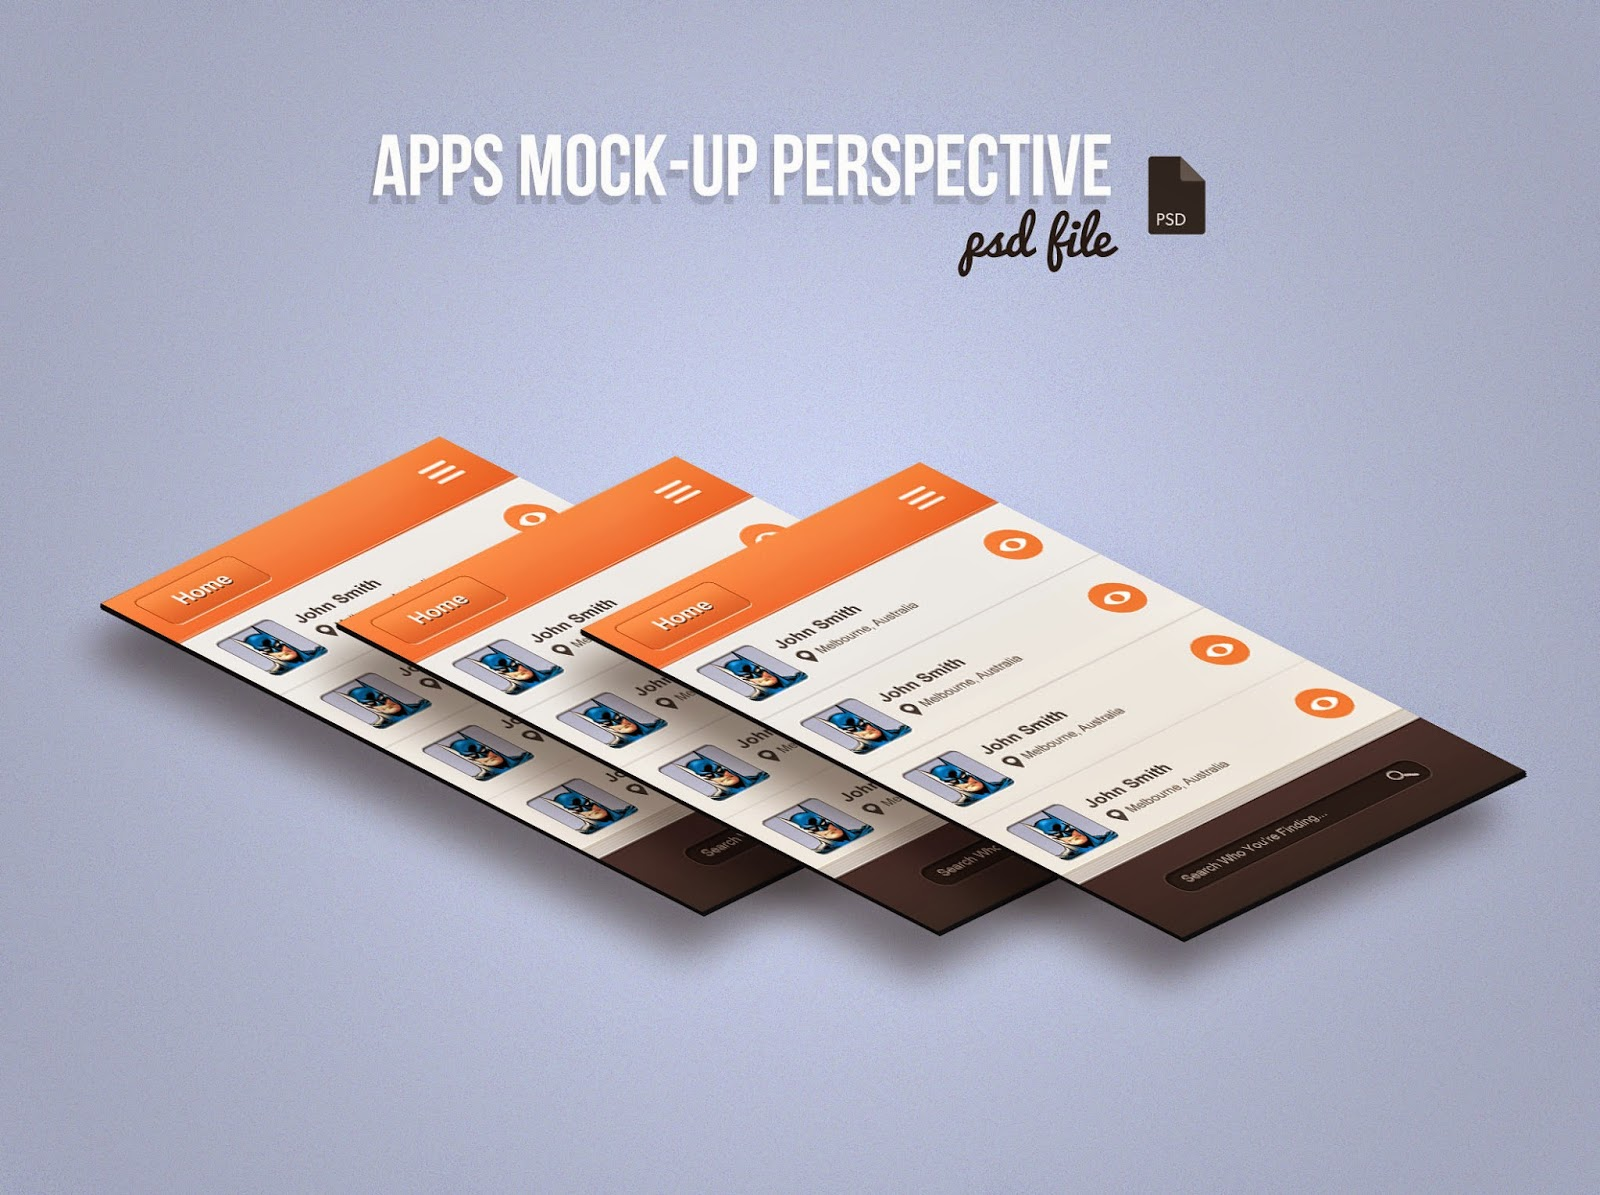 Perspective App Screen Mockup PSD